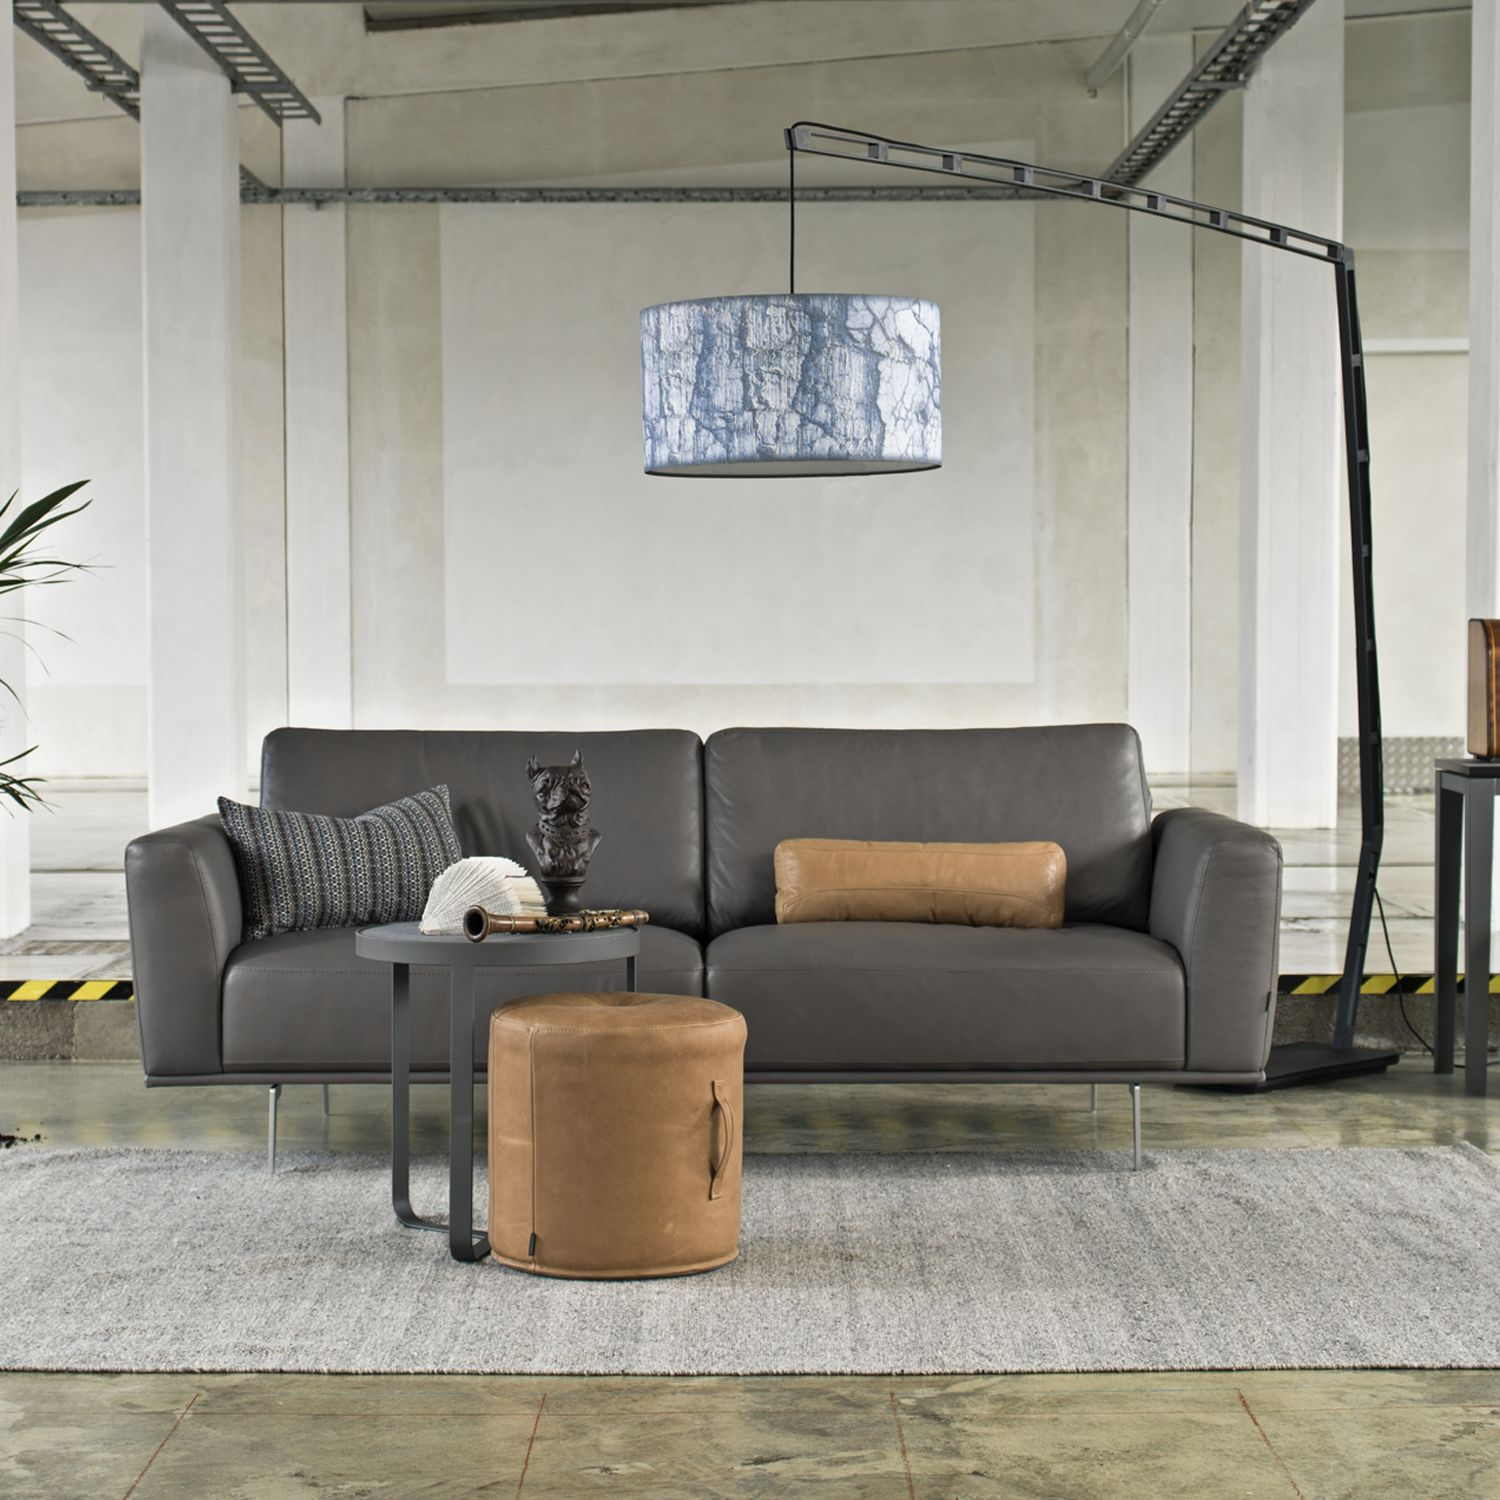 Best 3 Seater Sofa Designs Sofas Chaise Longue Baratos Alicante Furninova Noir Available In Store Now